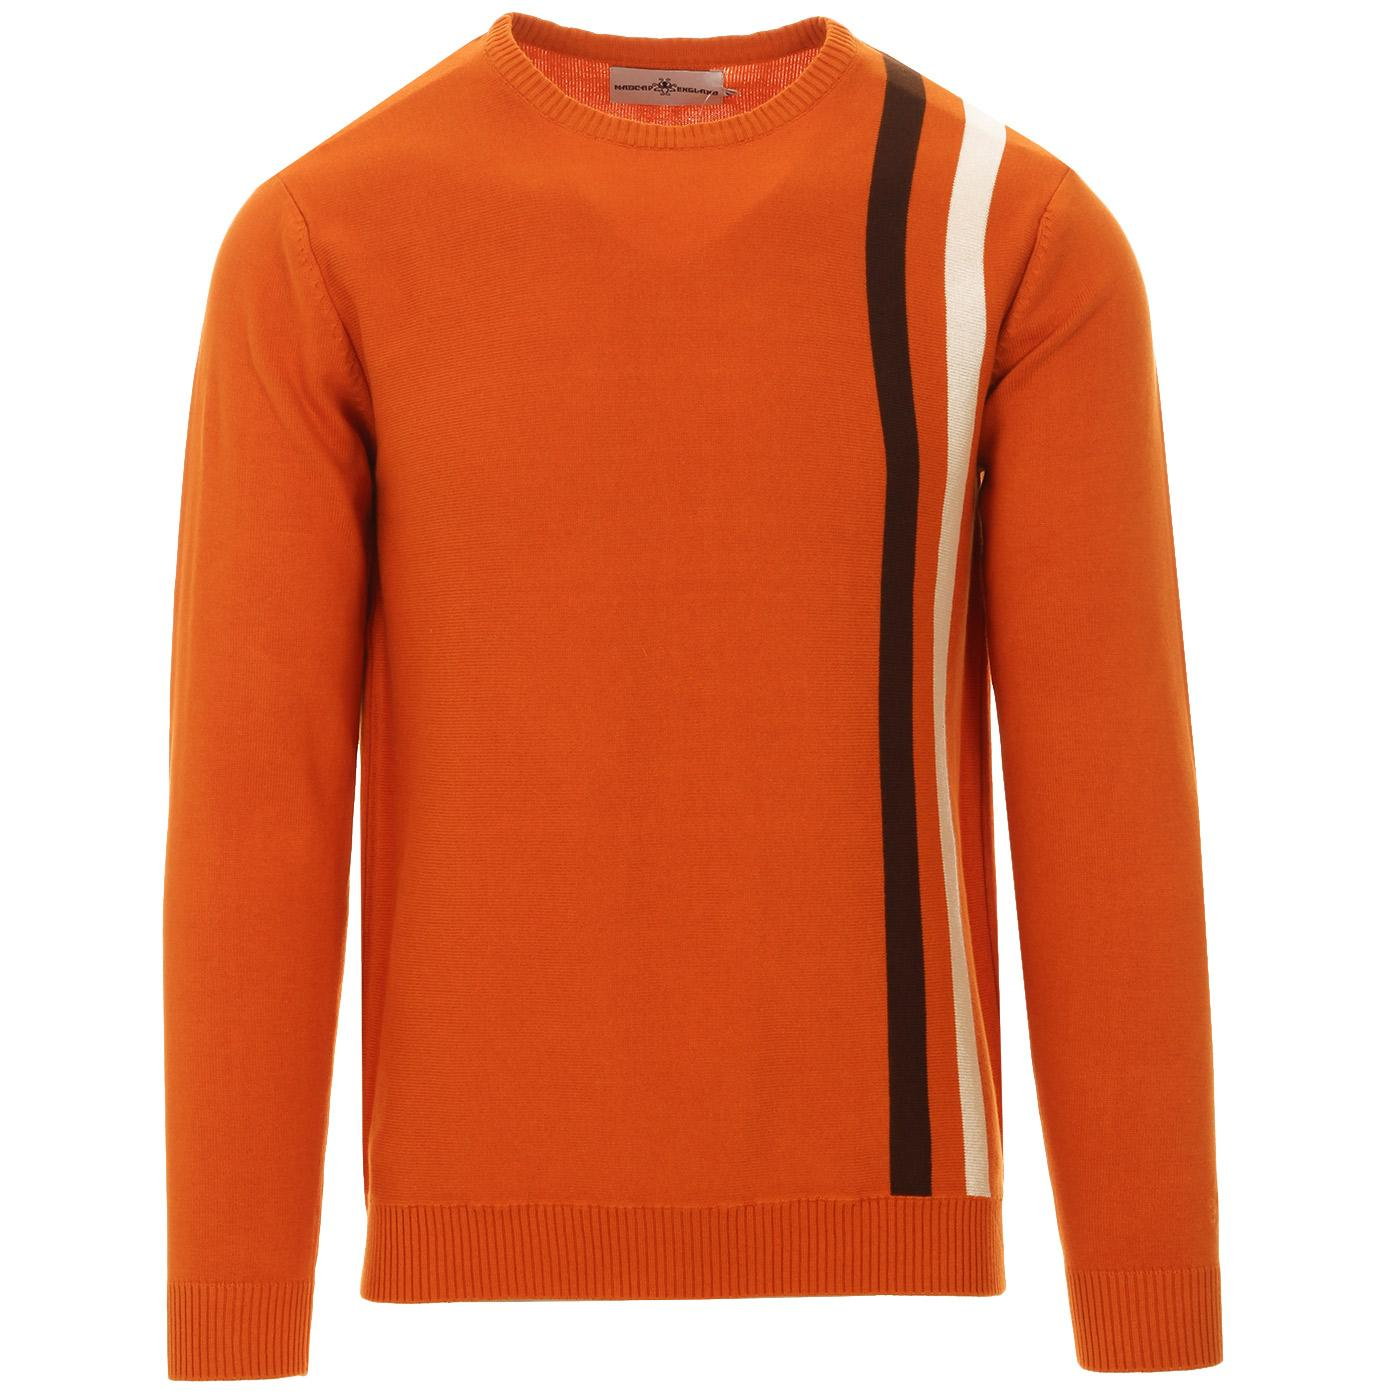 Madcap England Action 60s Mod Stripe Racing Jumper in Marmalade